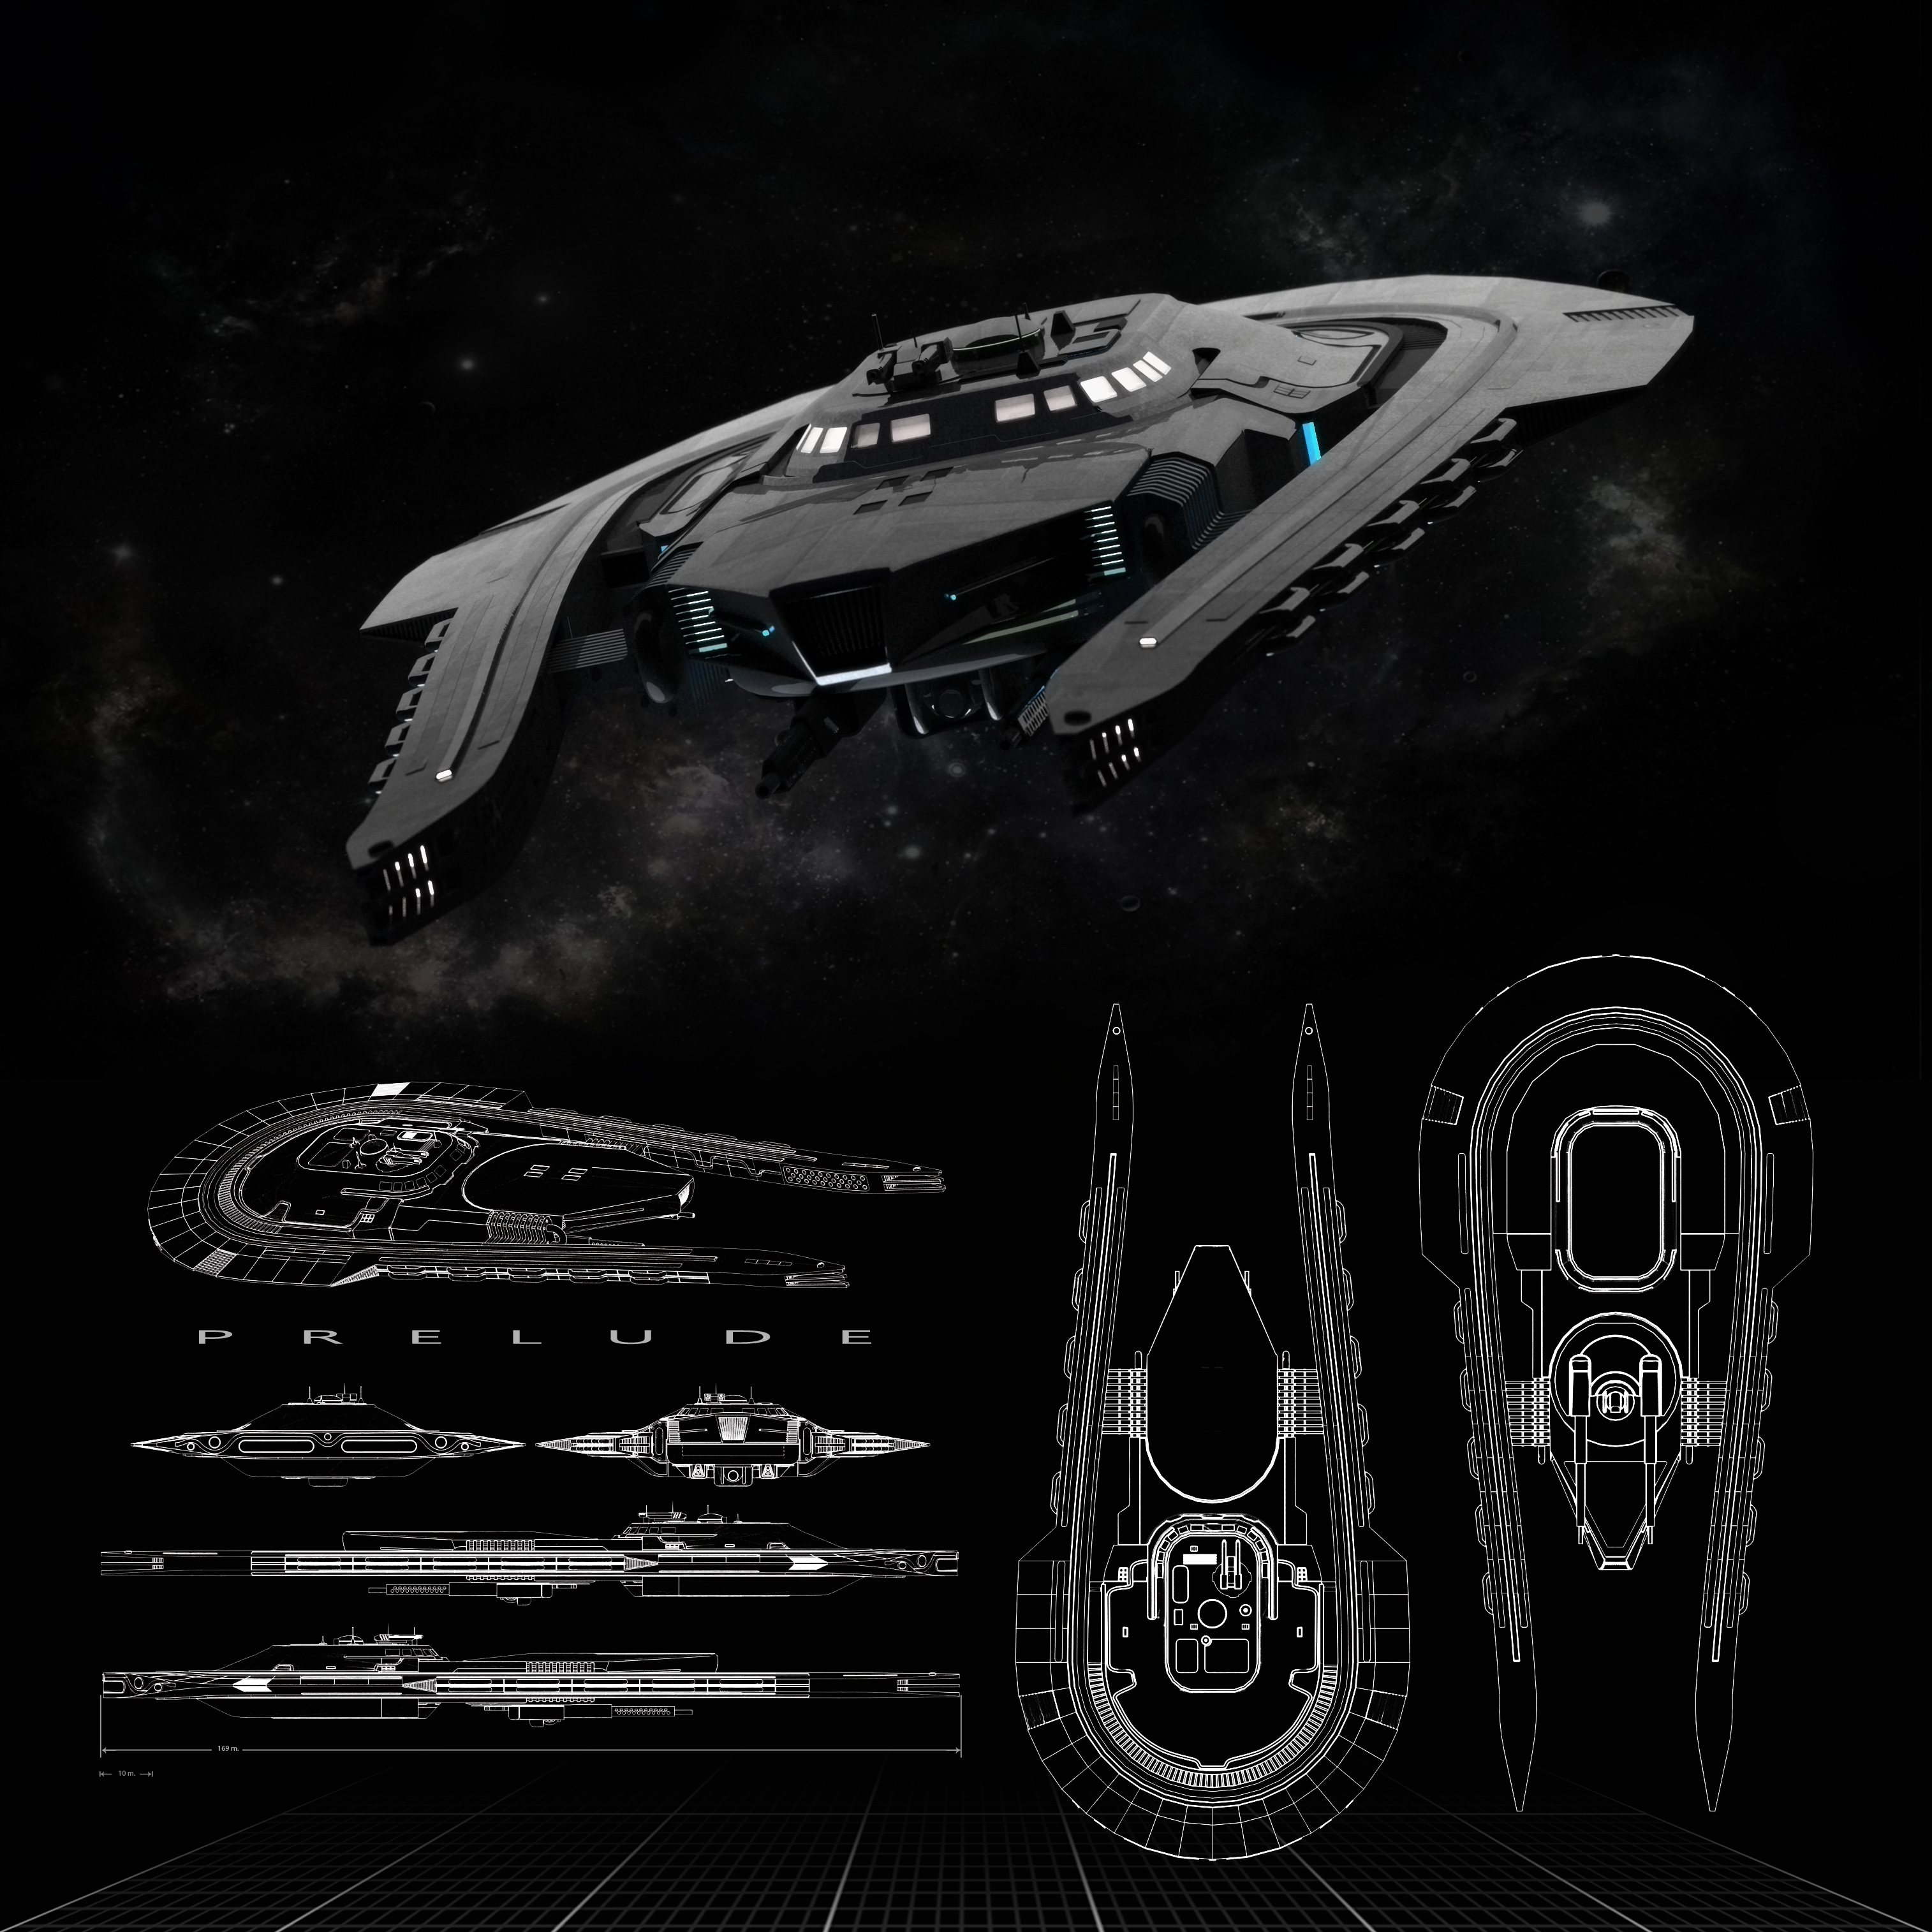 Prelude Scout Ship By Vatzily On Deviantart